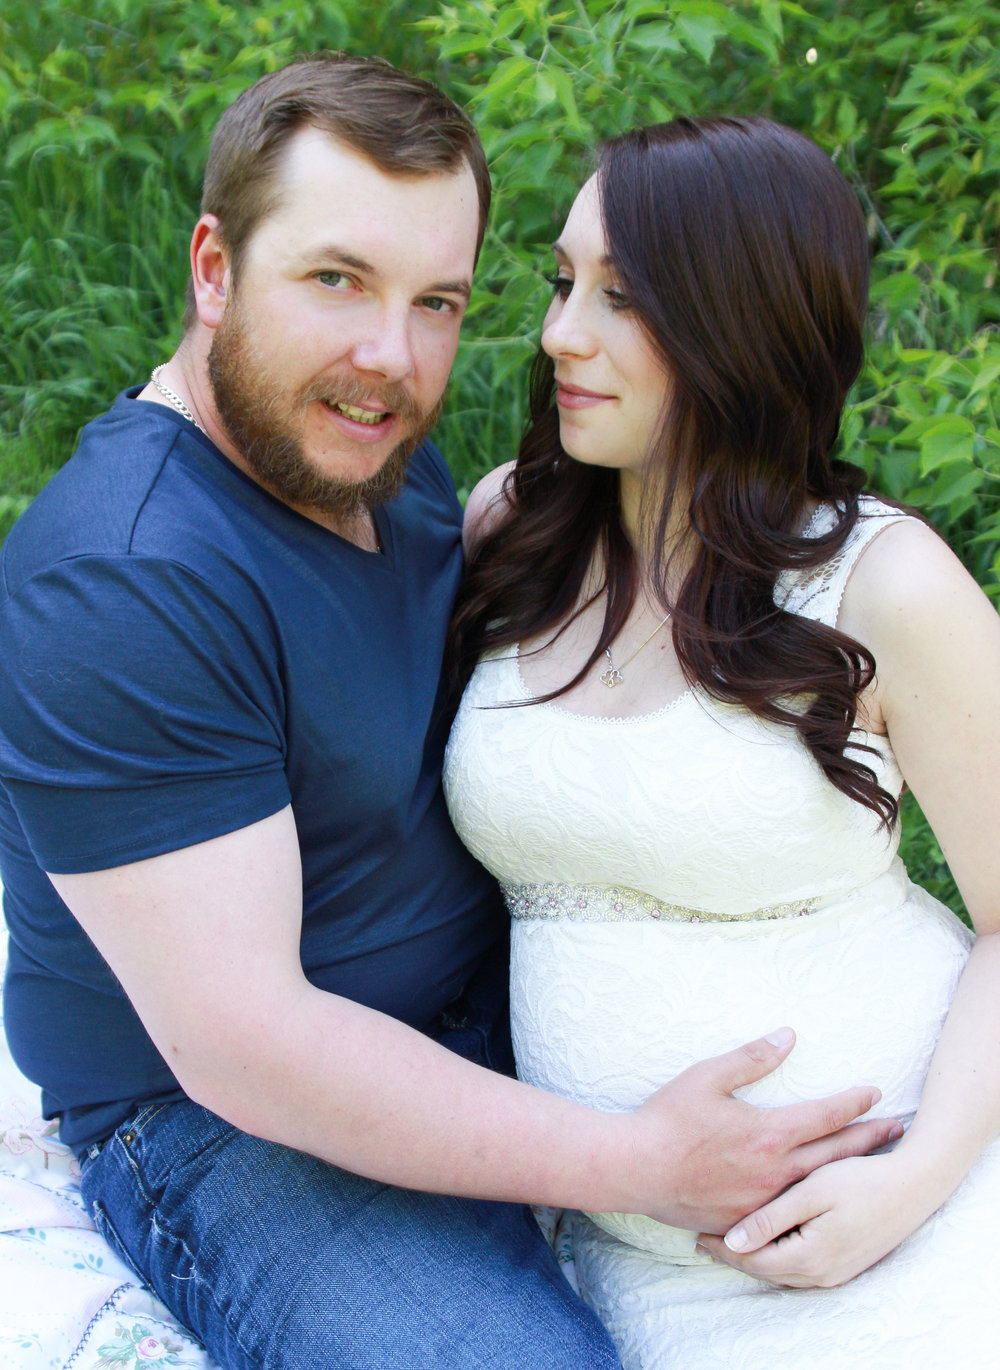 M&P {Expecting!}_WEB-47.jpg